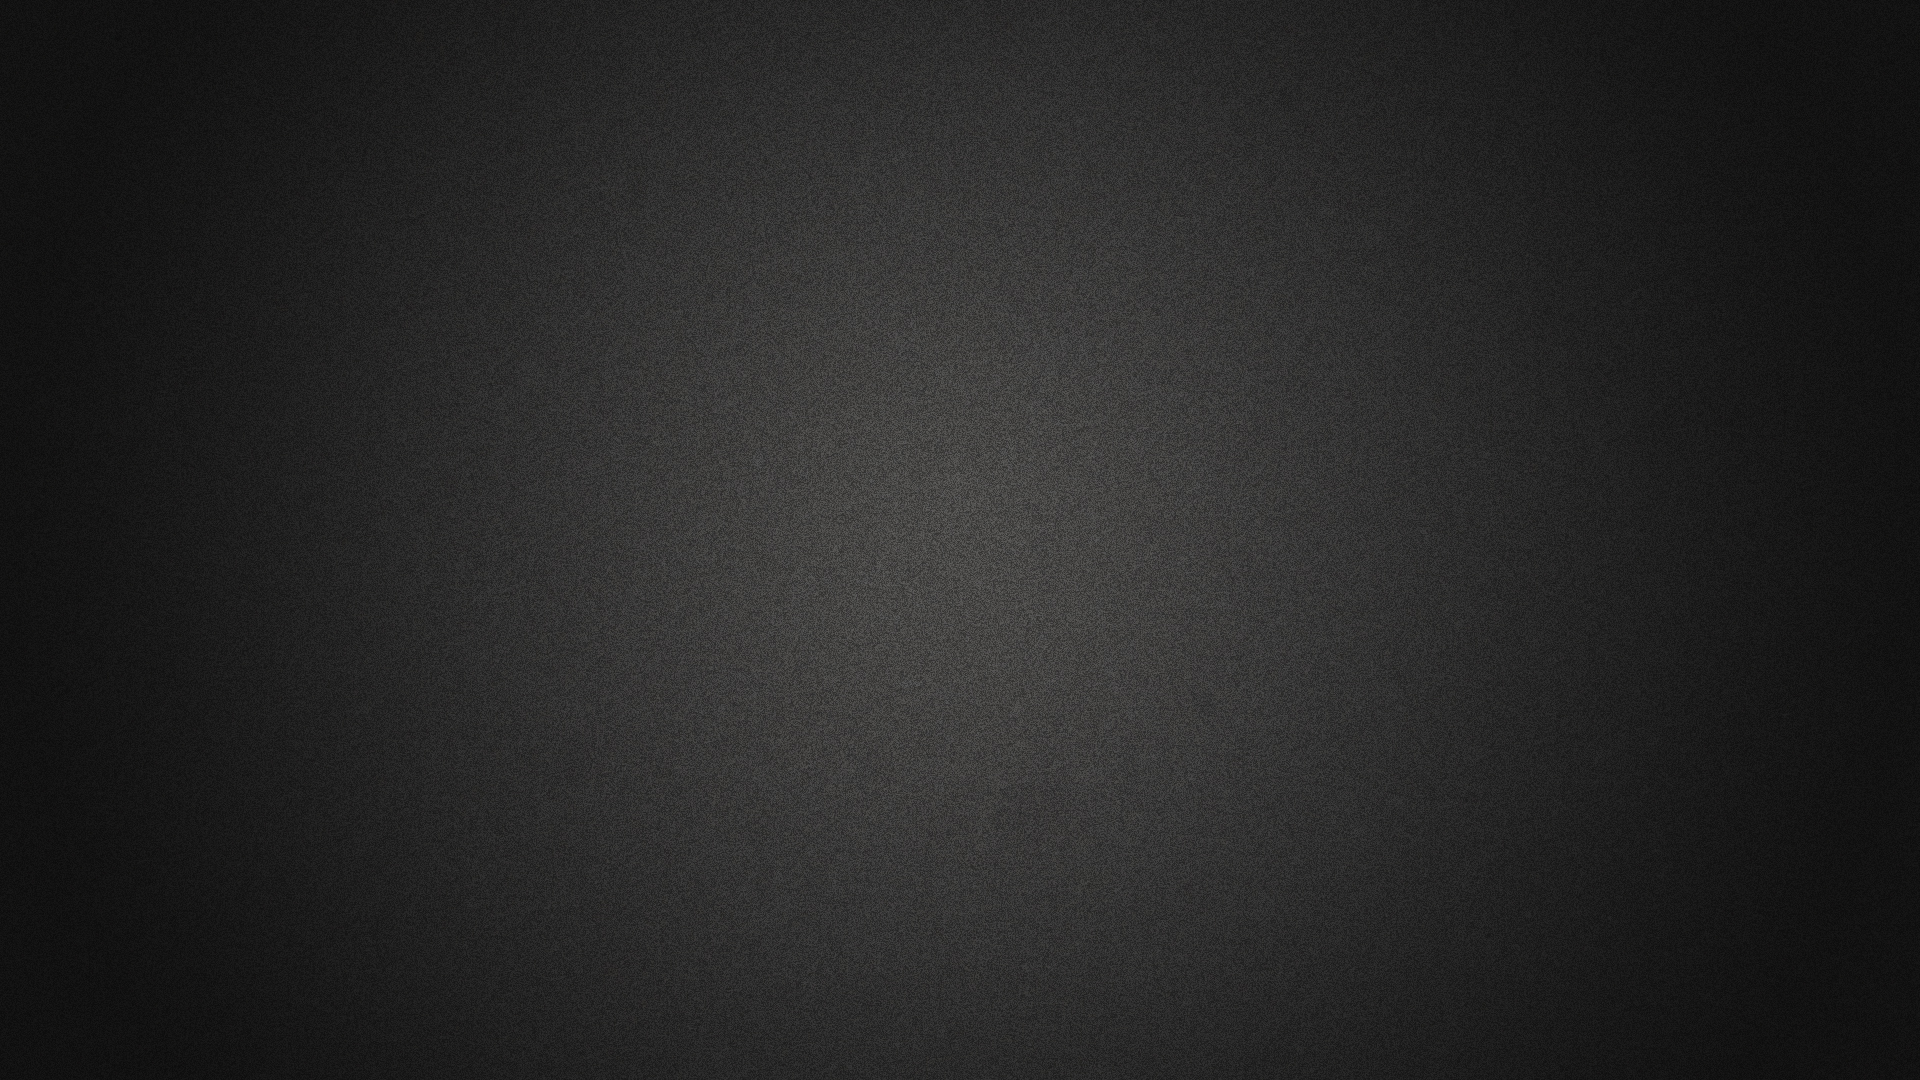 Matte Black Wallpaper